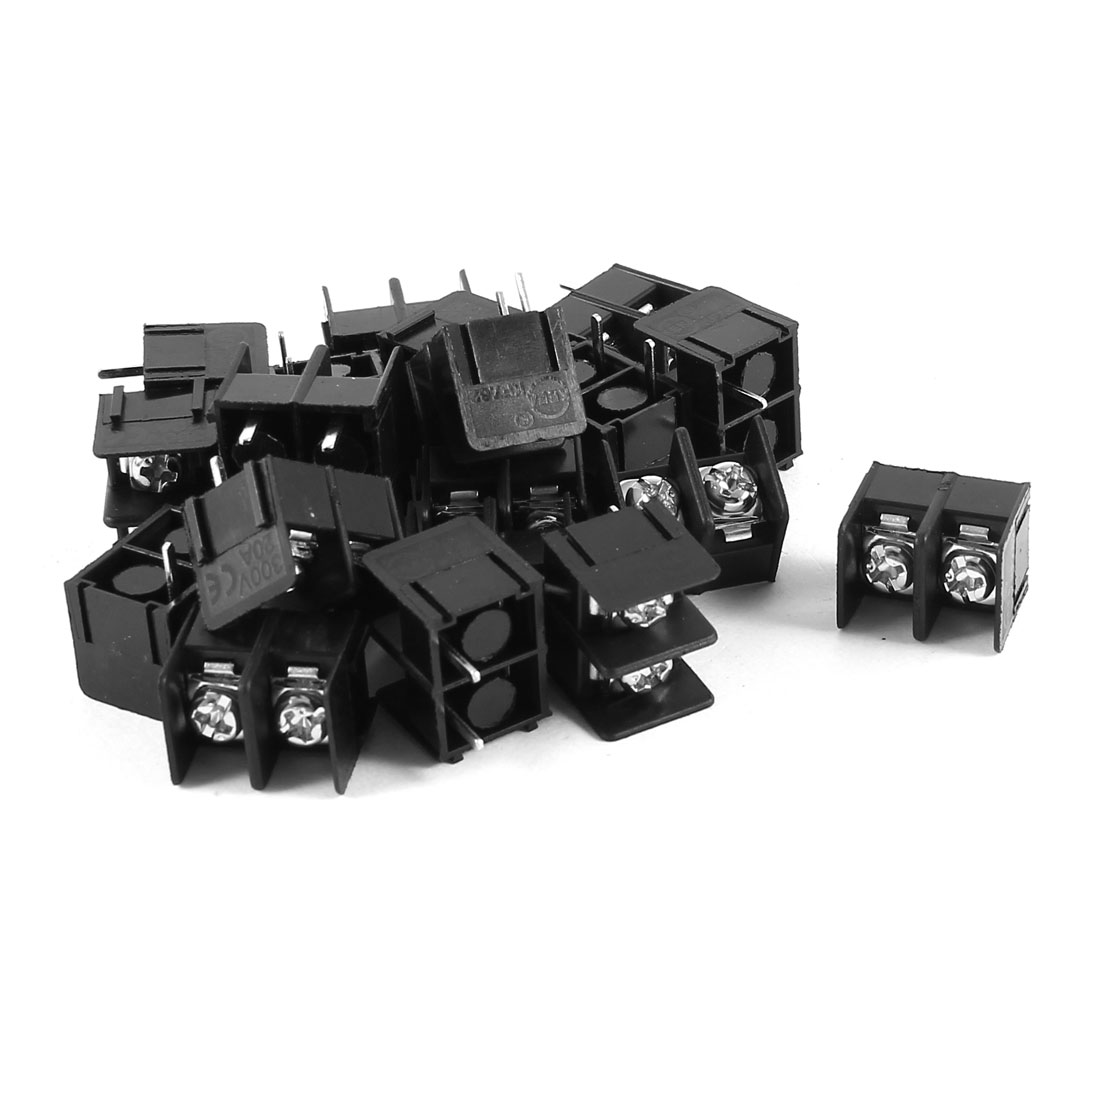 20 Pcs KF7.62-2P 2P 7.62mm Pitch Wire Connector Screw Terminal Barrier Blocks 300V 20A